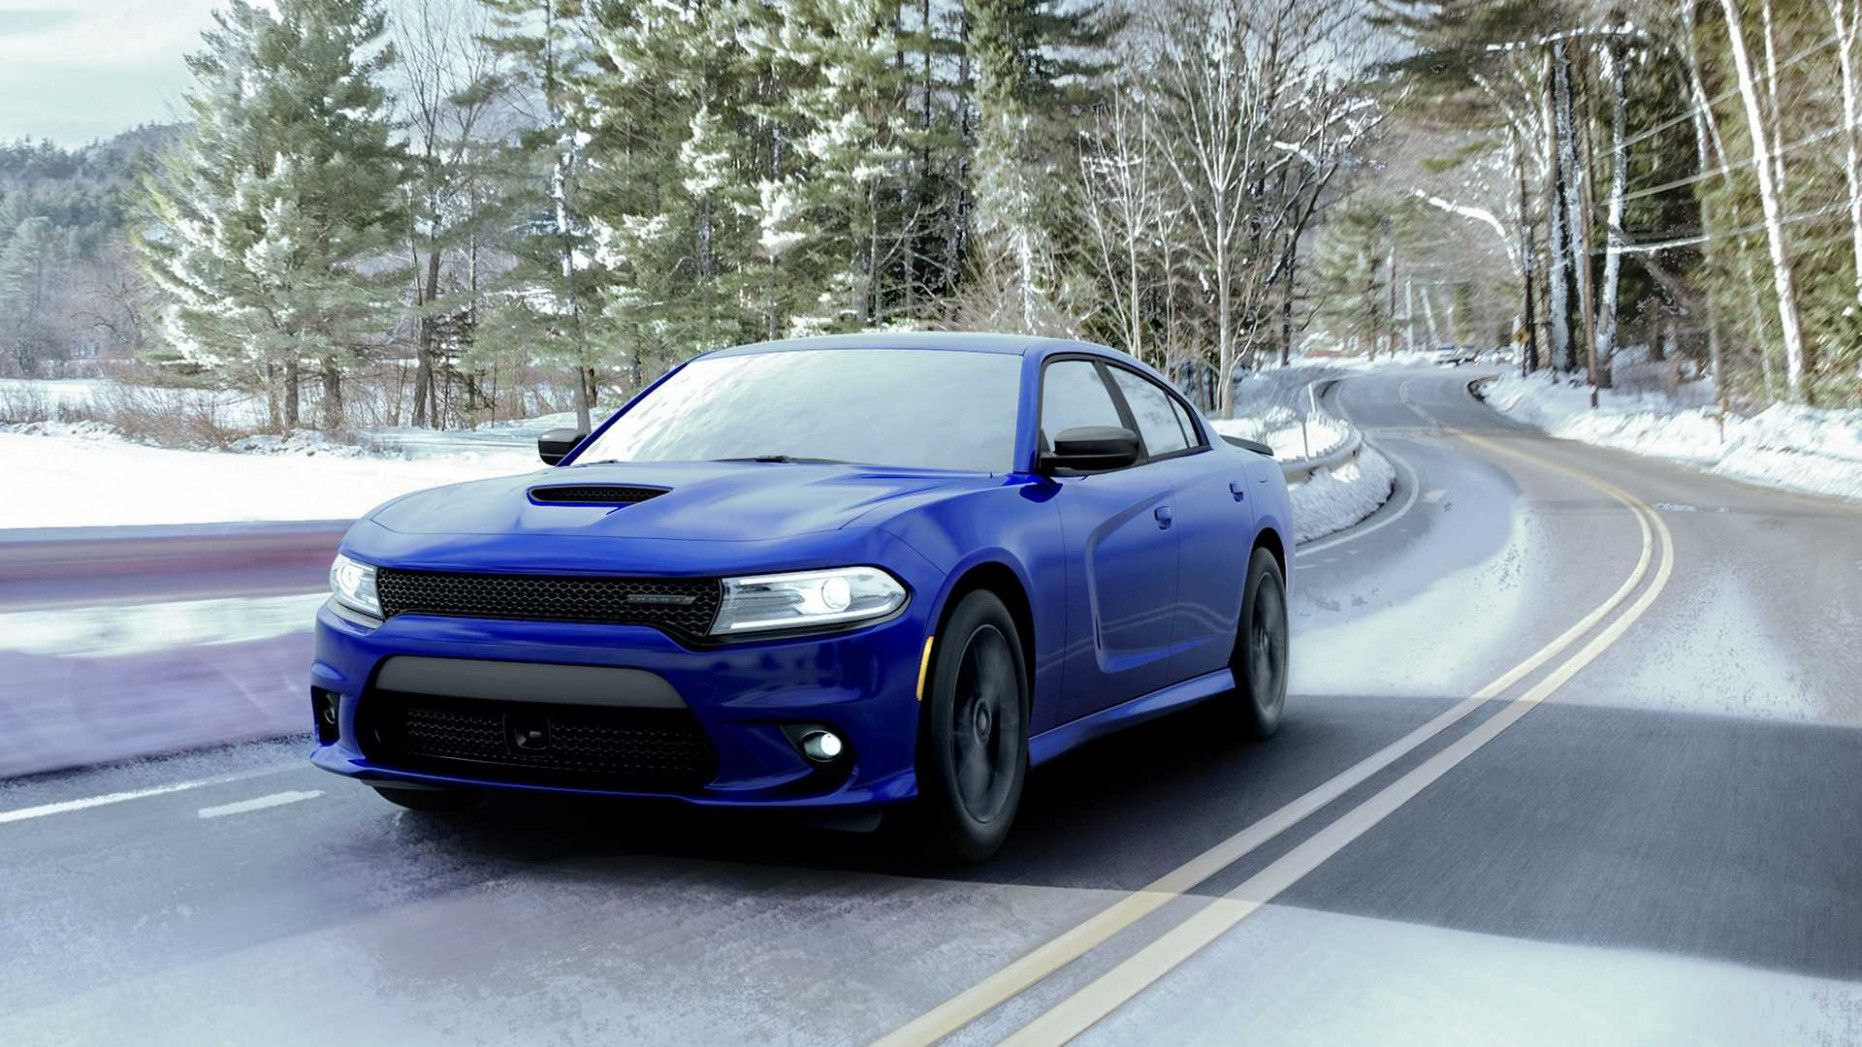 10 Wallpaper 2020 Dodge Charger Sxt In 2020 Dodge Charger Awd Dodge Charger Dodge Charger Sxt